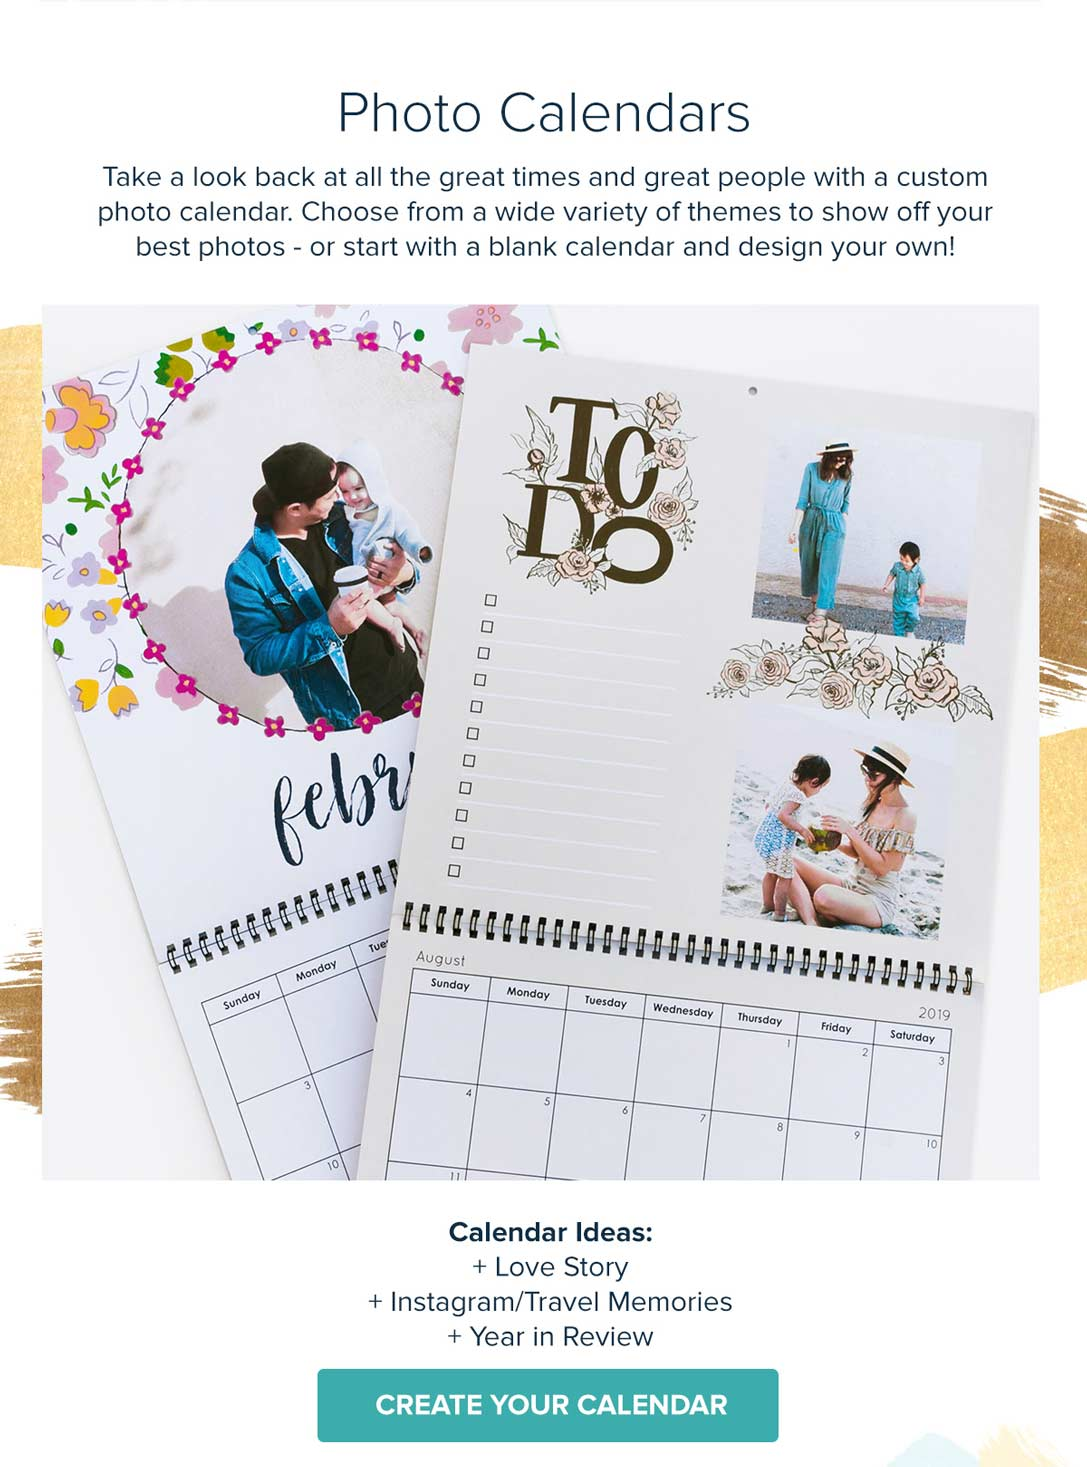 Photo Calendars for the New Year - CREATE YOUR OWN